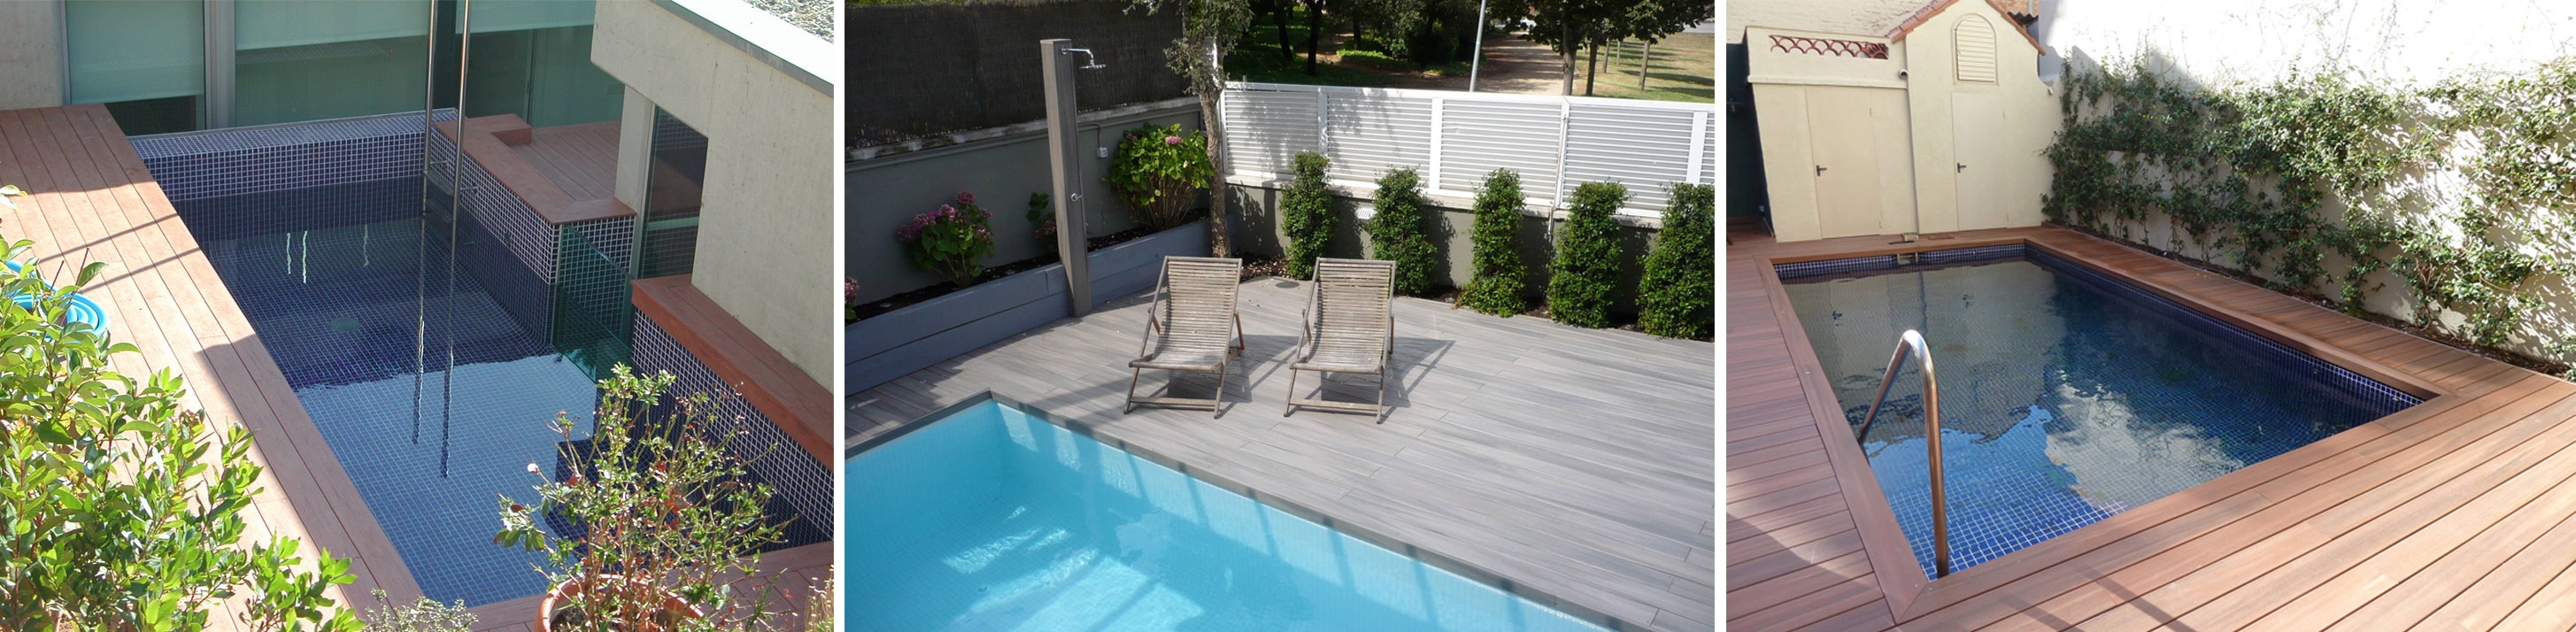 Over The Last Decade We Have Seen How All Owners Who A Terrace Patio Or Small Garden In Their Home Want To Install Pool Enjoy It